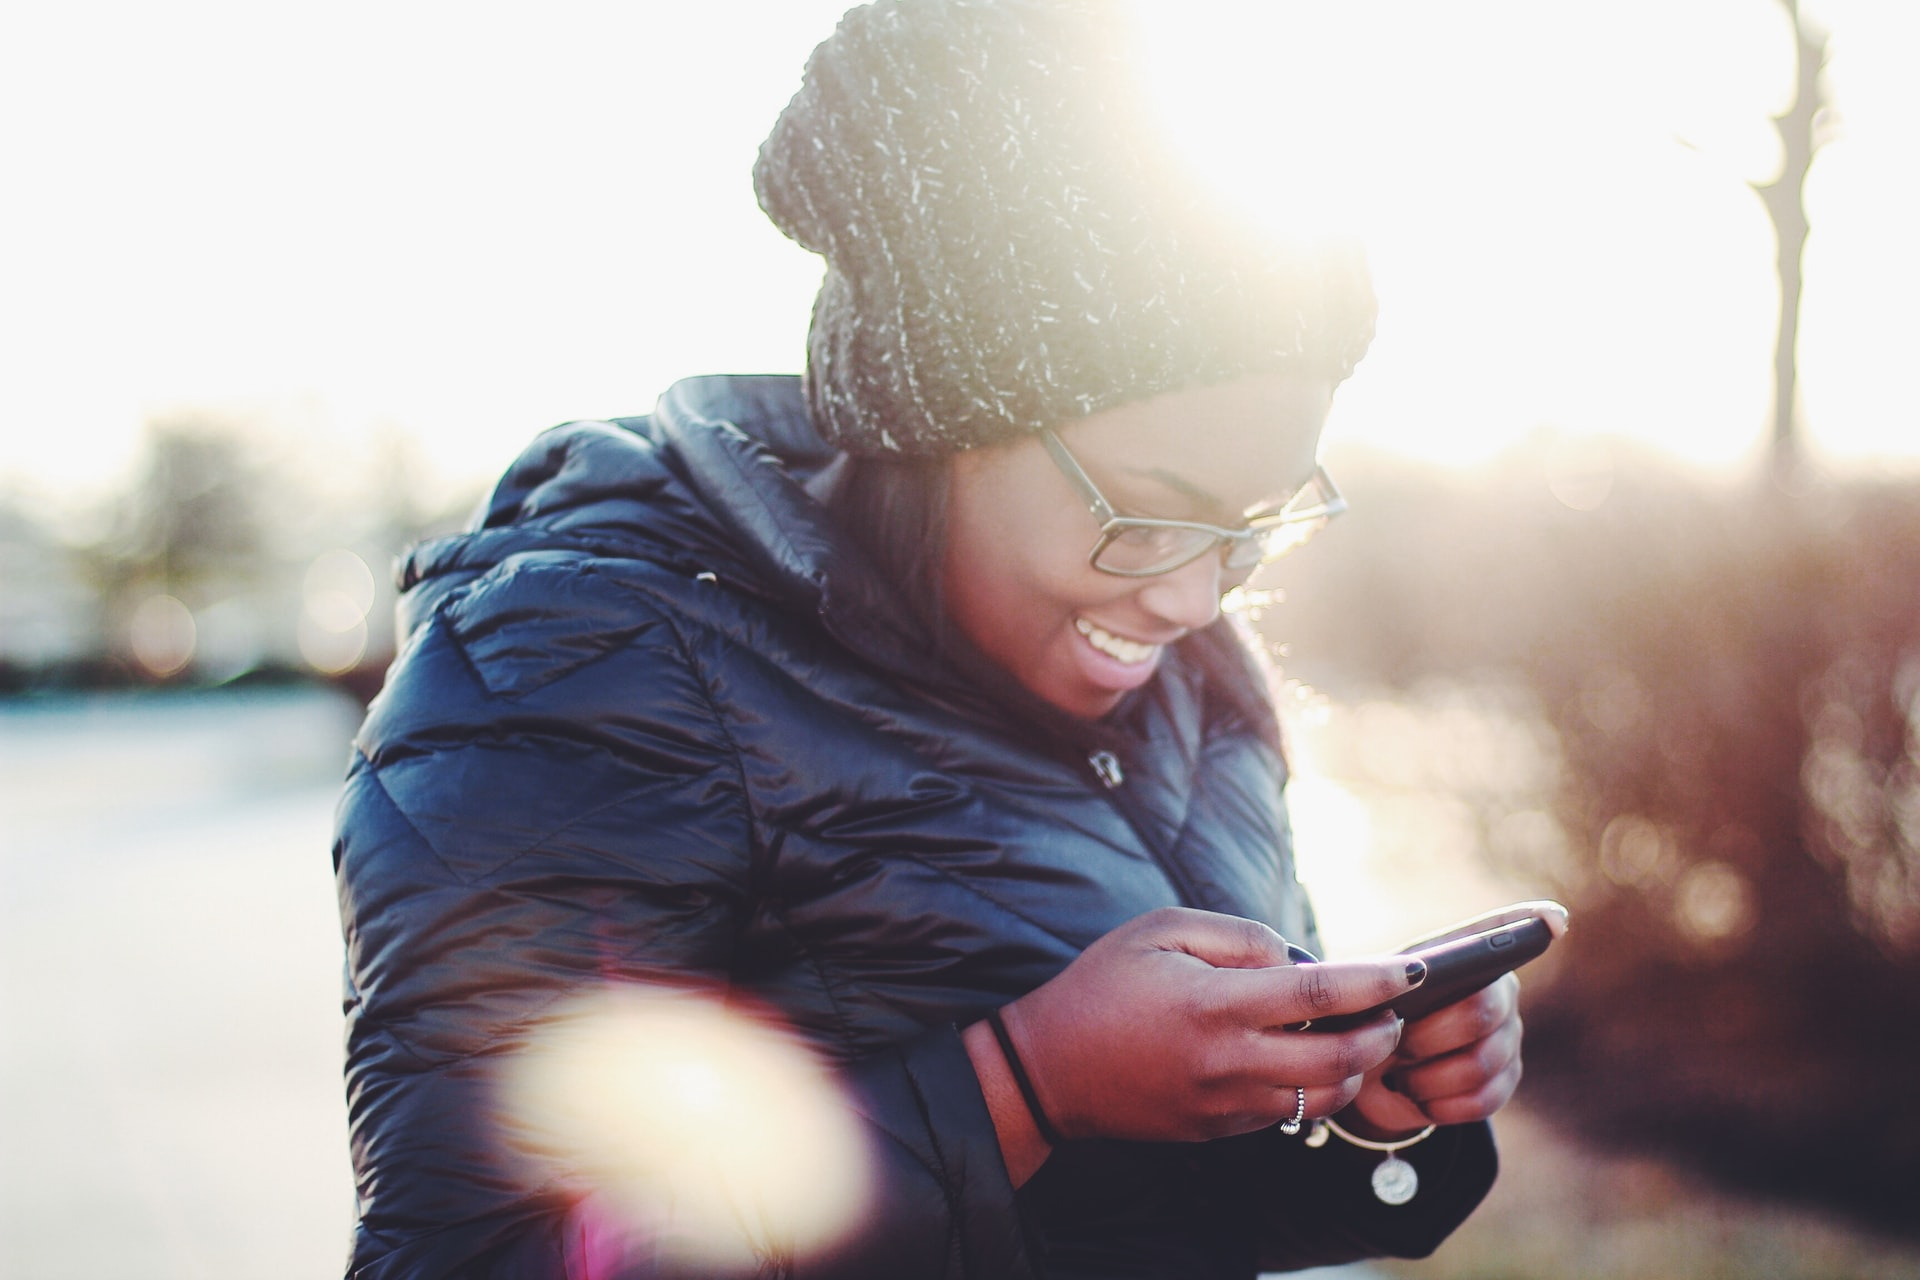 A photo of a person in a stocking cap and warm coat smiling while using their phone